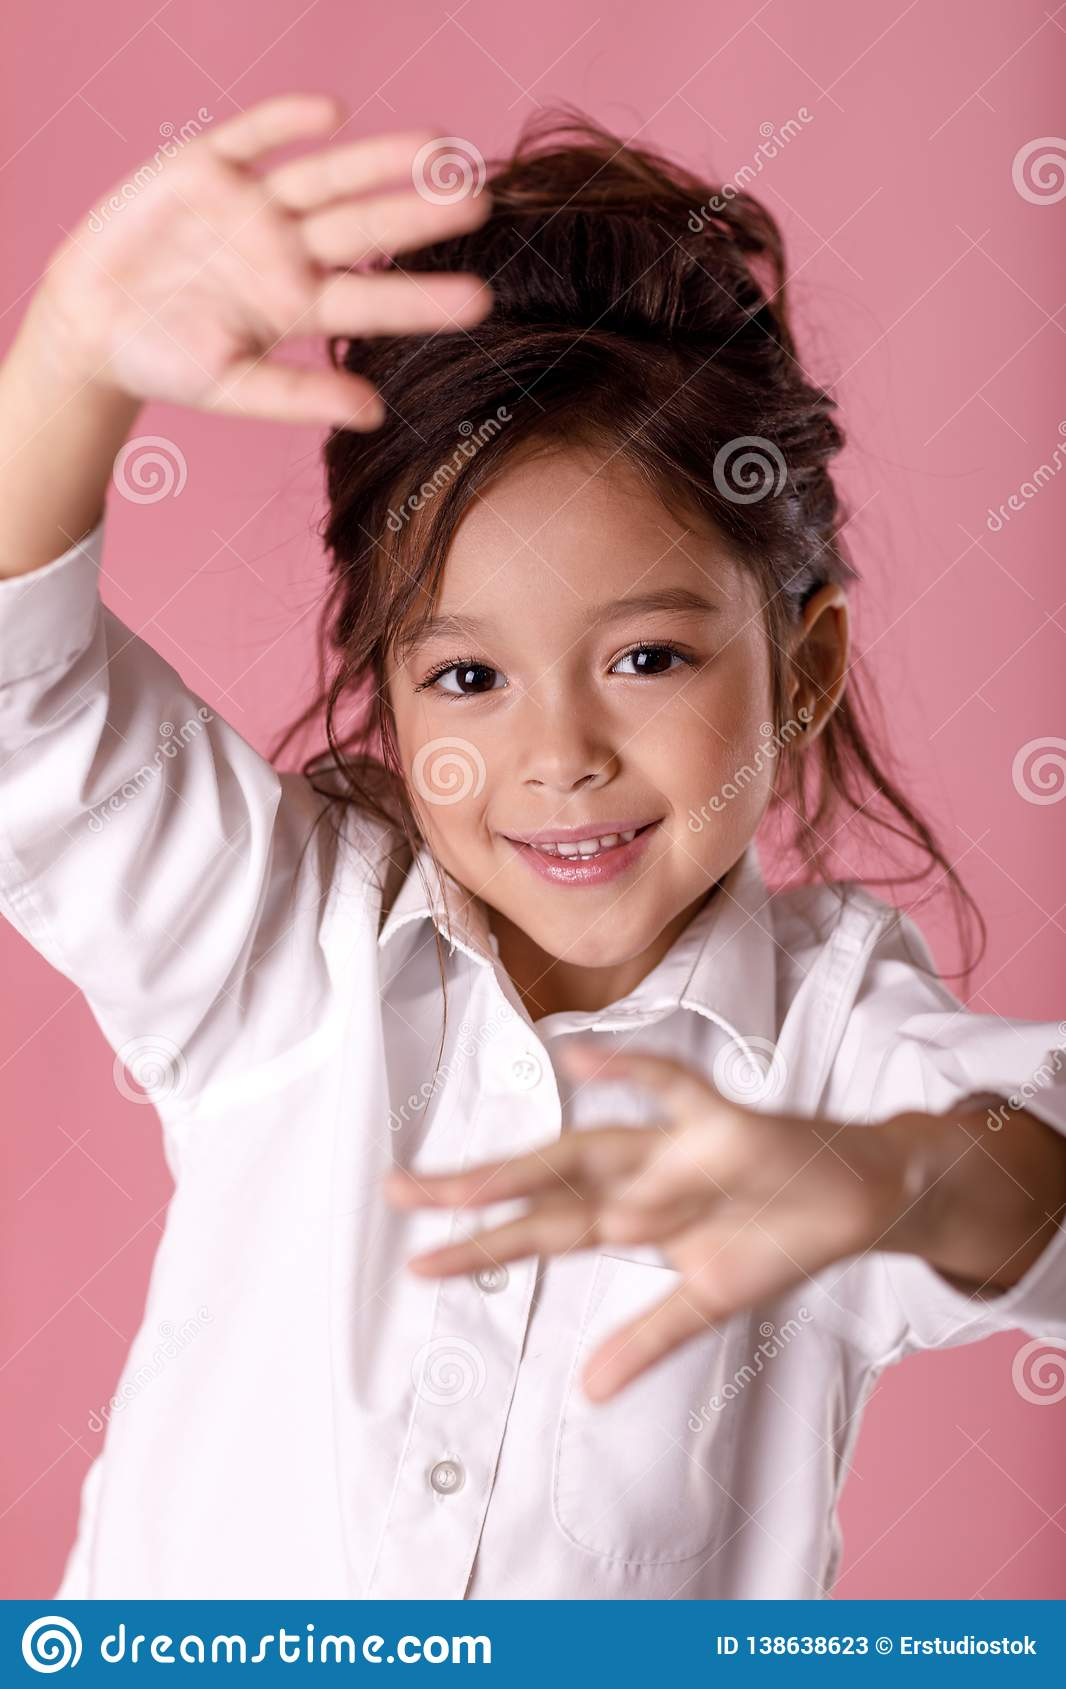 Cute scared little girl in white shirt making stop gesture on pink background. Human emotions and facial expression